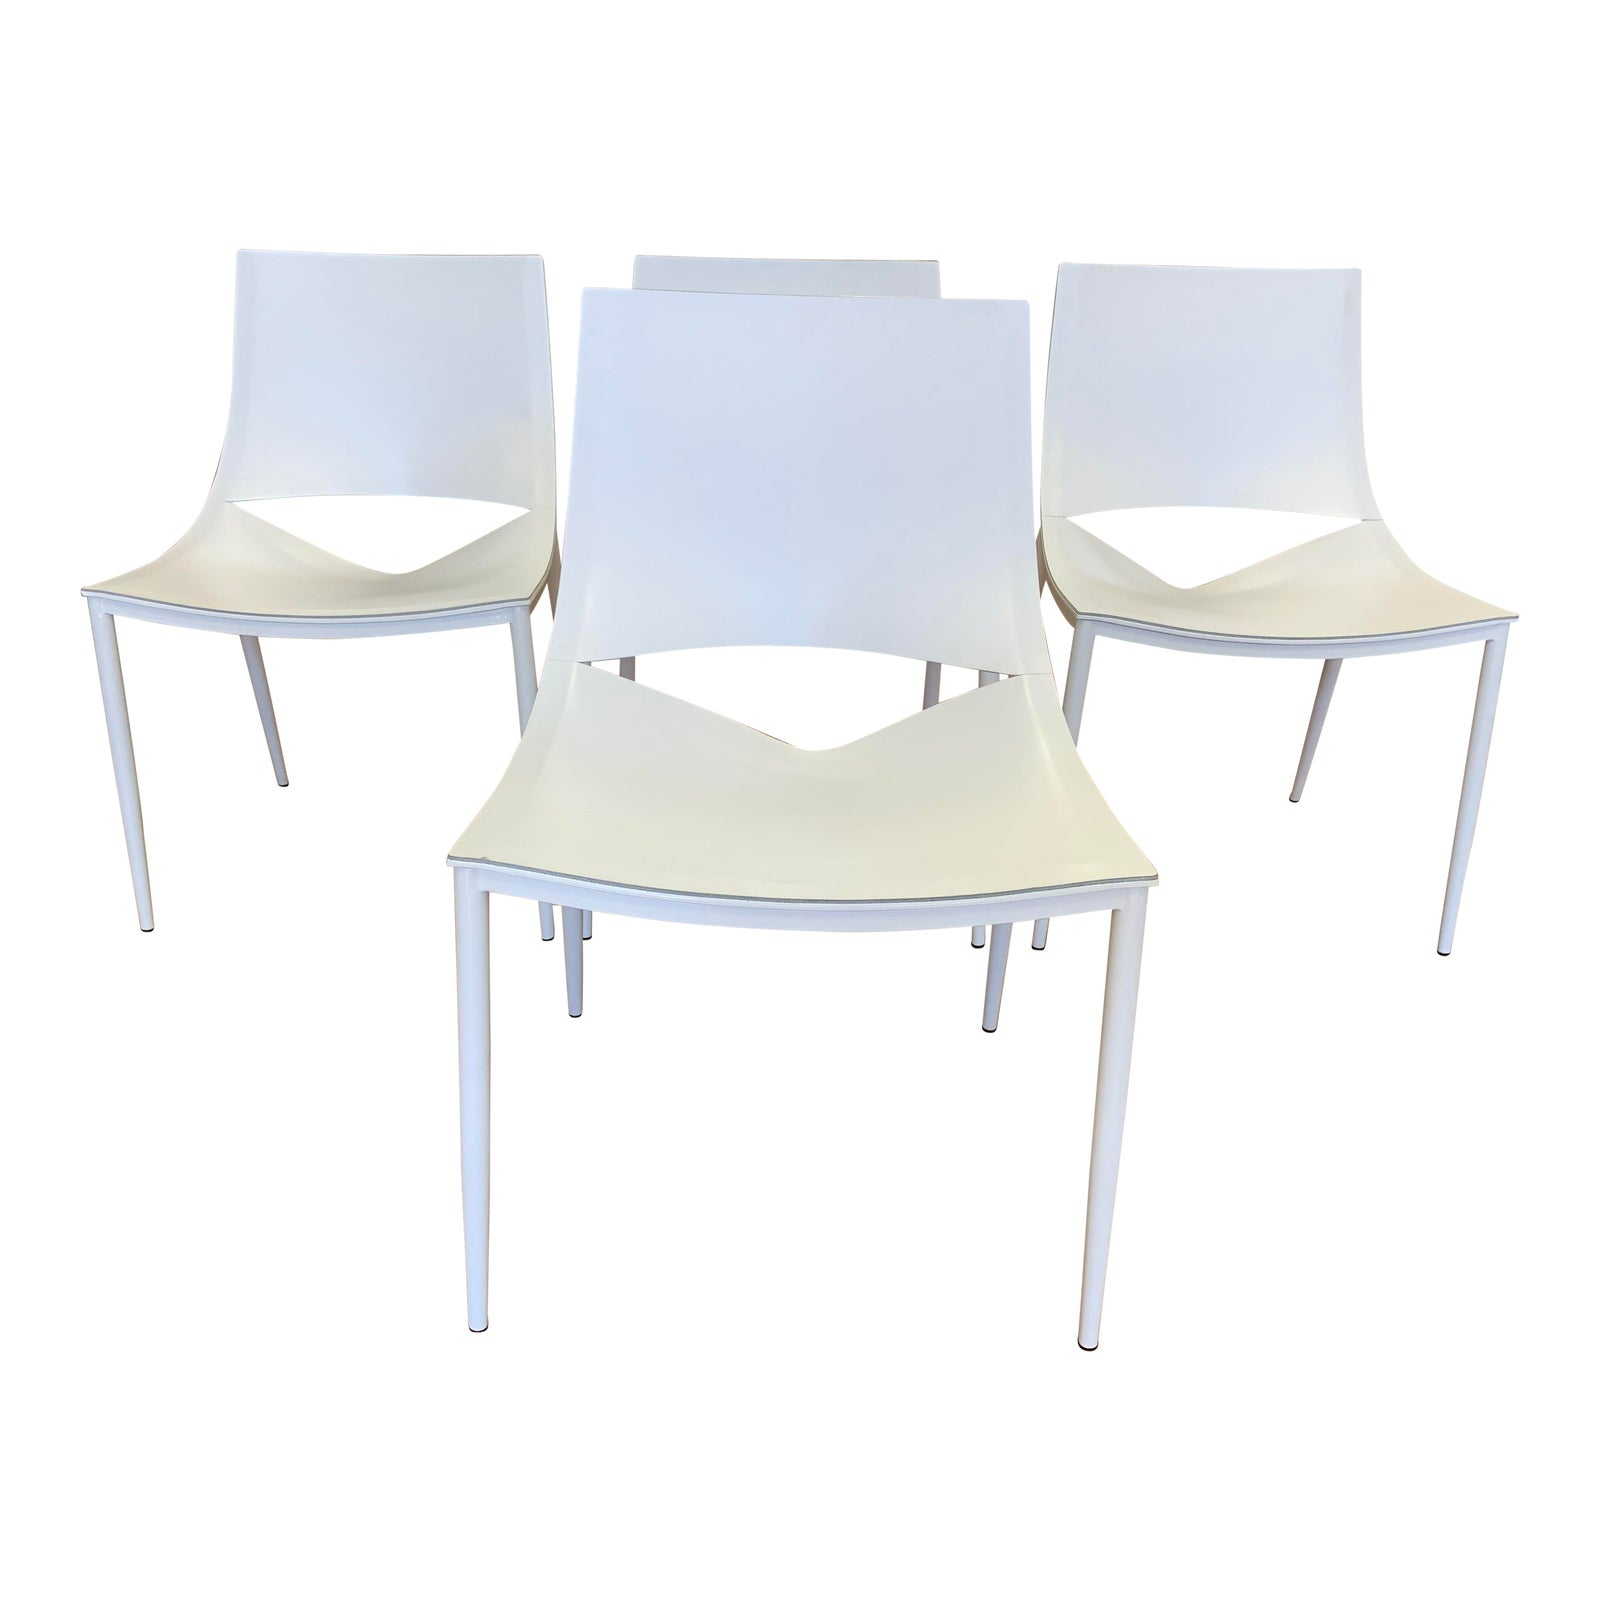 Cool Modloft Marcelo Ligieri Sloane White Dining Chairs Set Of Unemploymentrelief Wooden Chair Designs For Living Room Unemploymentrelieforg